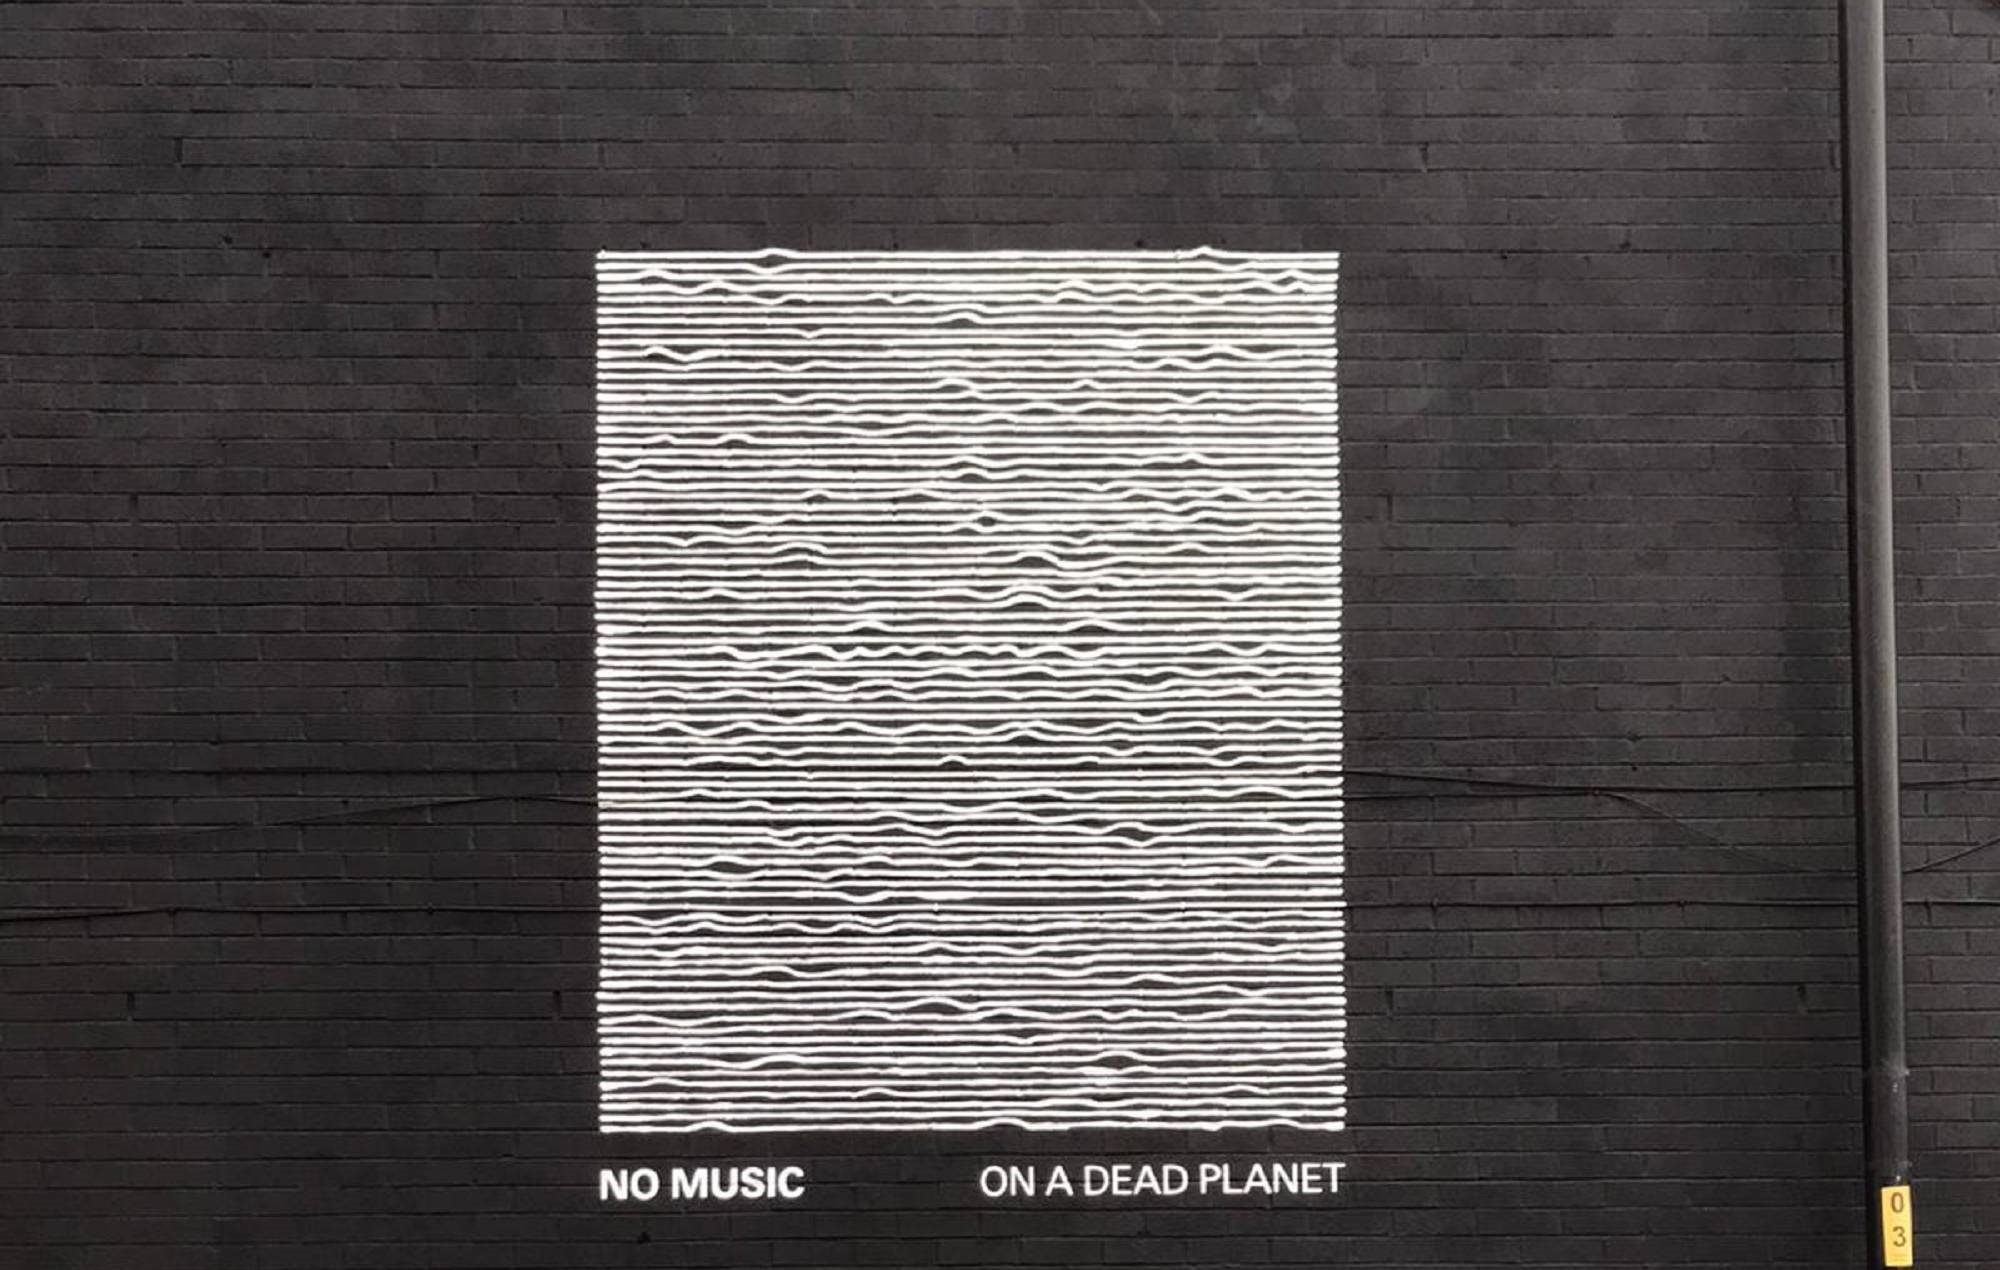 Joy Division's 'Unknown Pleasures' artwork has been turned into a climate mural